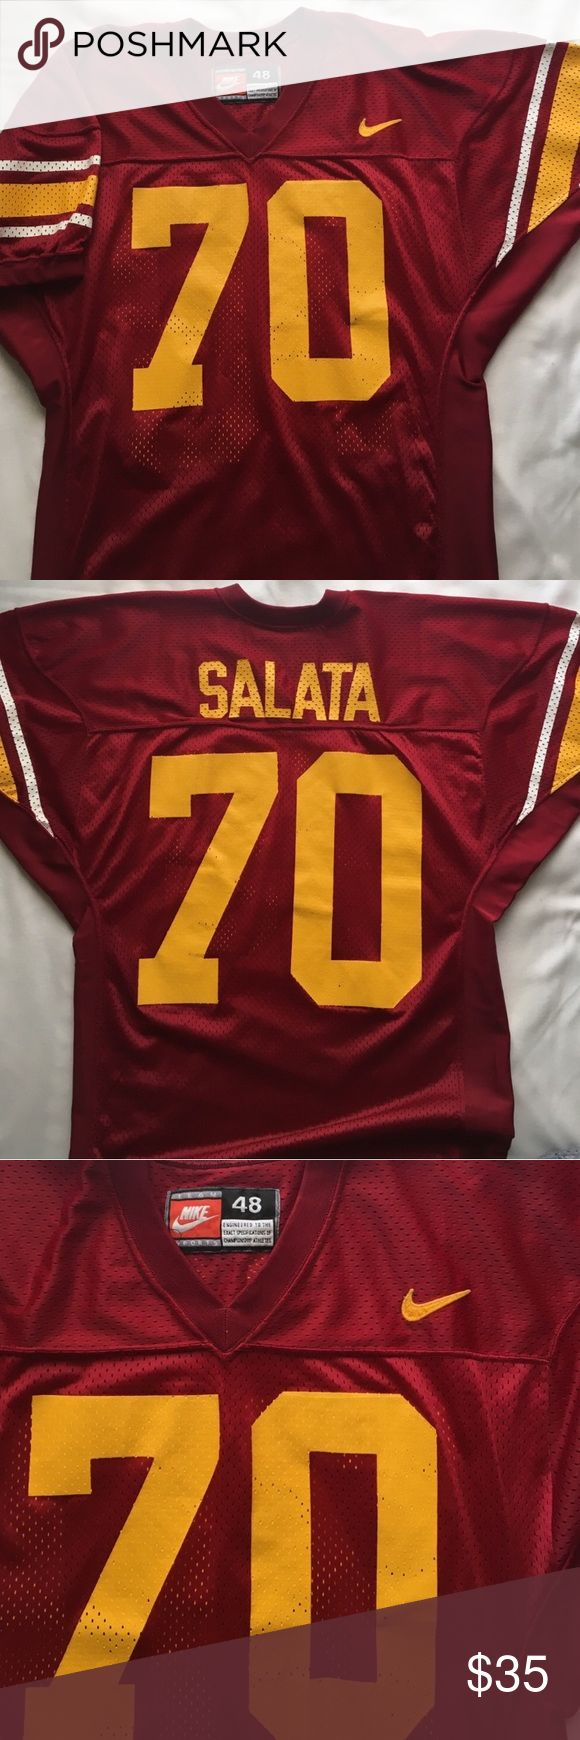 "NIKE USC Football Jersey USC Collegiate Football jersey by NIKE . Extra long ""Engineered to the exact specifications of championship athletes"" . Size 48. #70 Salata. In great condition. Feel free to ask questions or bundle to save Nike Shirts"